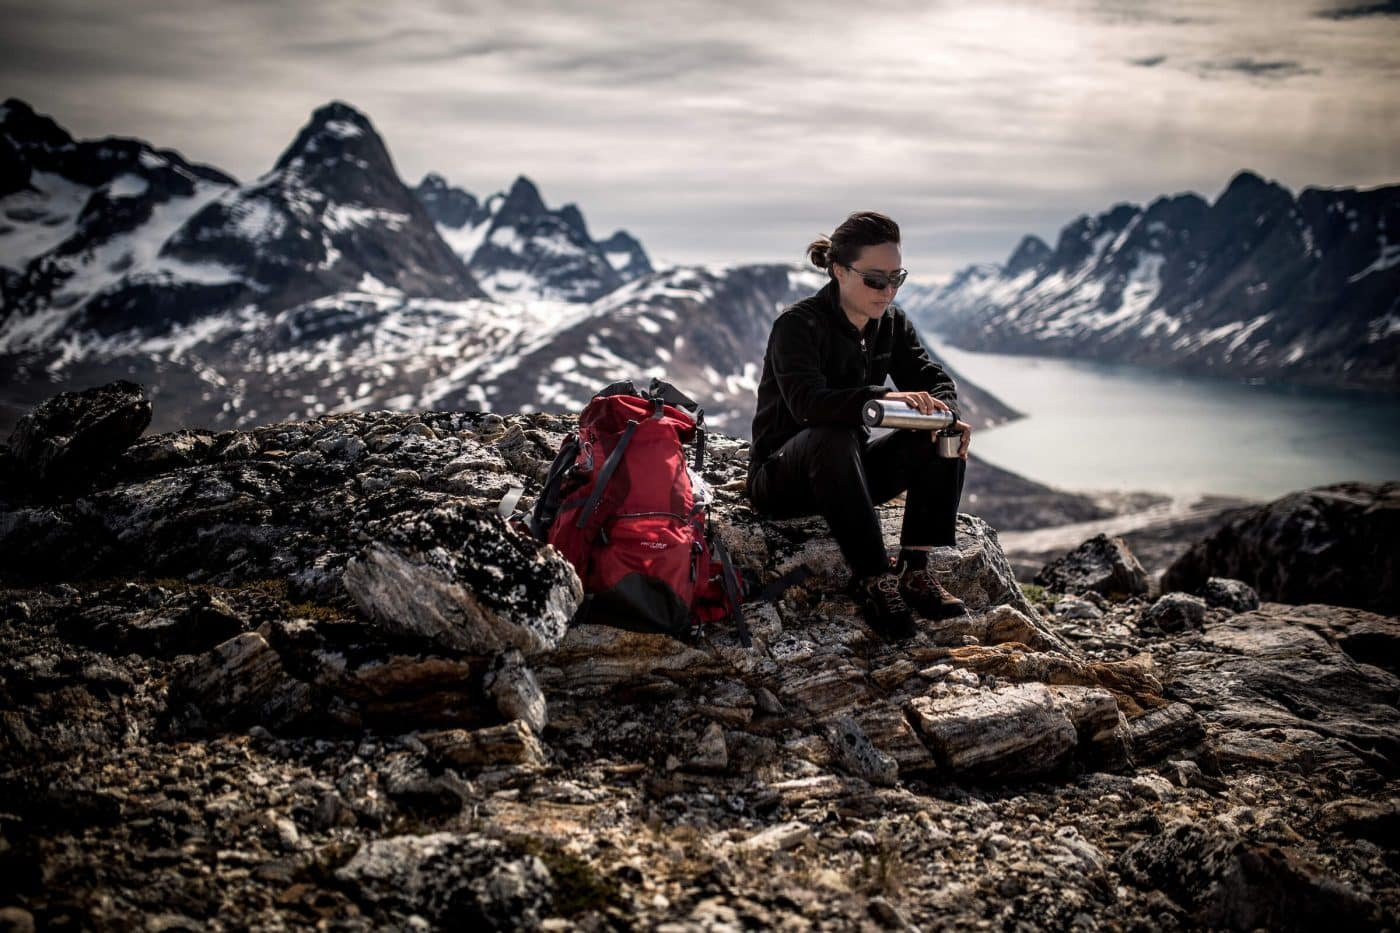 A hiker pouring coffee high in the hills above Tiniteqilaaq in East Greenland. By Mads Pihl